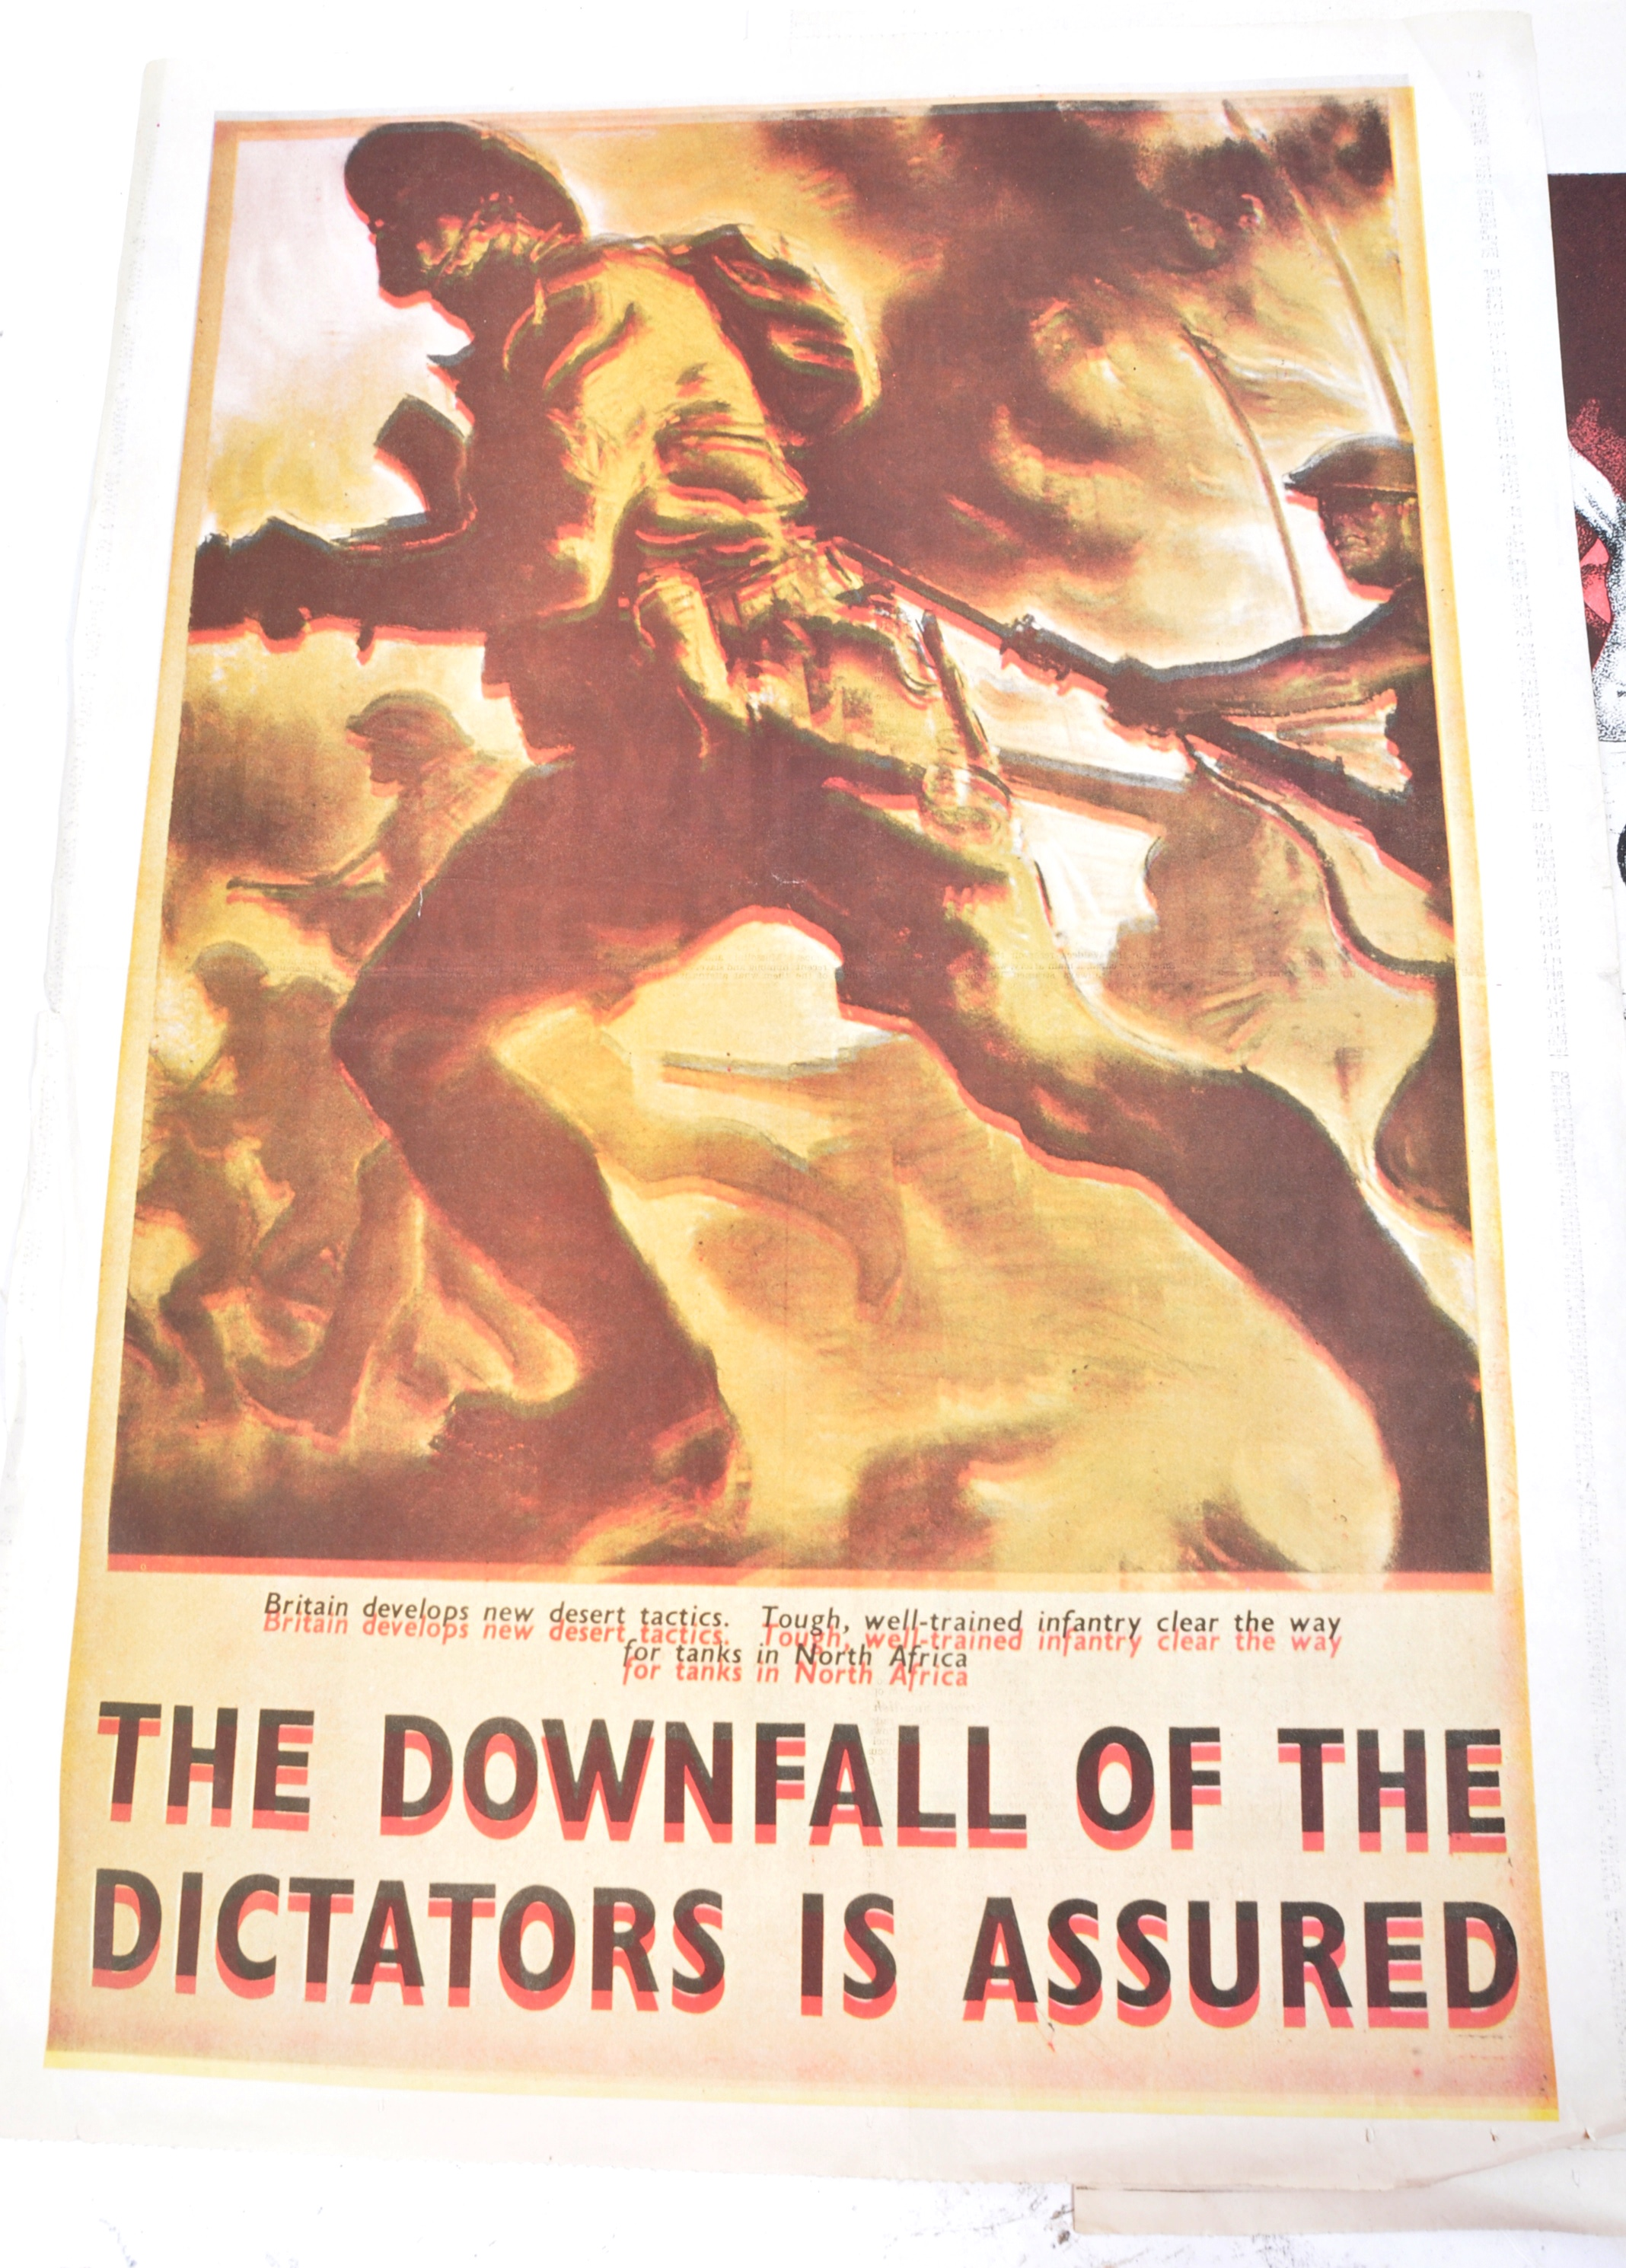 WWII SECOND WORLD WAR POSTERS - ENGLISH, GERMAN & OTHERS - Image 4 of 8